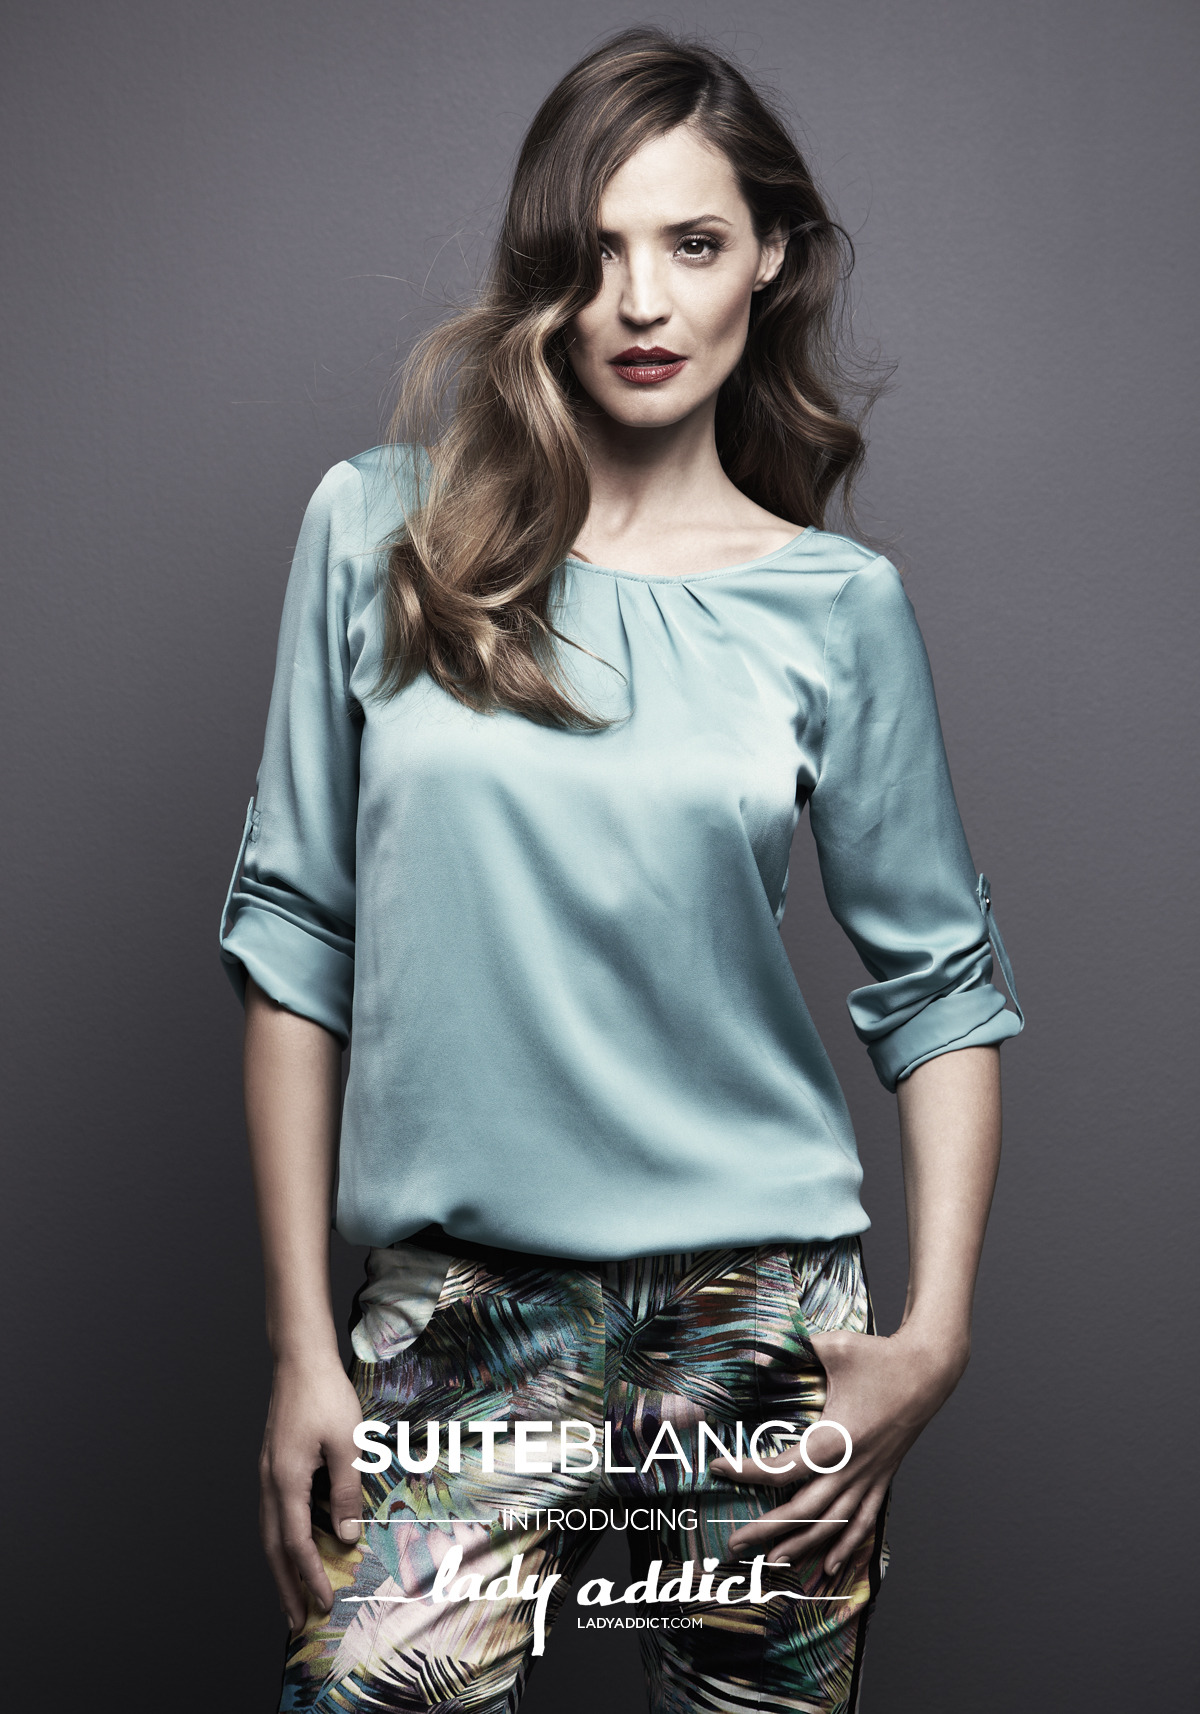 Shop Now Blanco.com: Pantalón / Cinturón. (SUITEBLANCO introducing LADY ADDICT. New Collection Fall Winter 2012).